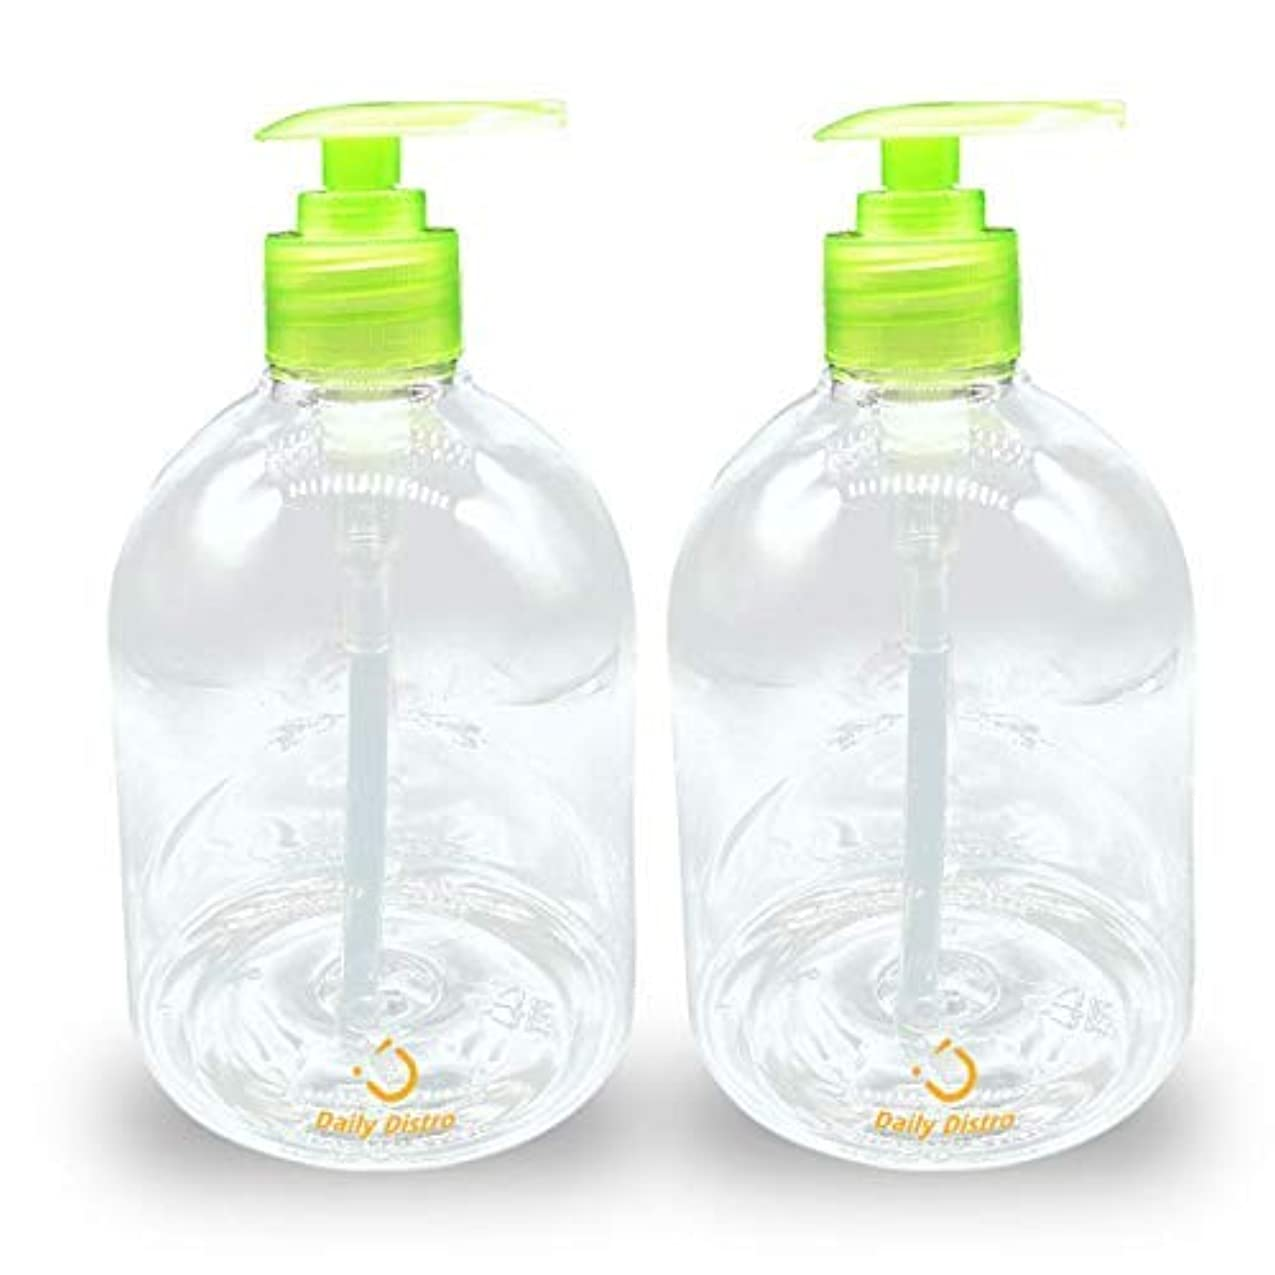 ステップ移動する弾力性のあるPack of 2 Clear PET Empty Bottle with Green Pump 16-Ounce, great for Essential Oils, Lotions, Liquid Soaps [並行輸入品]